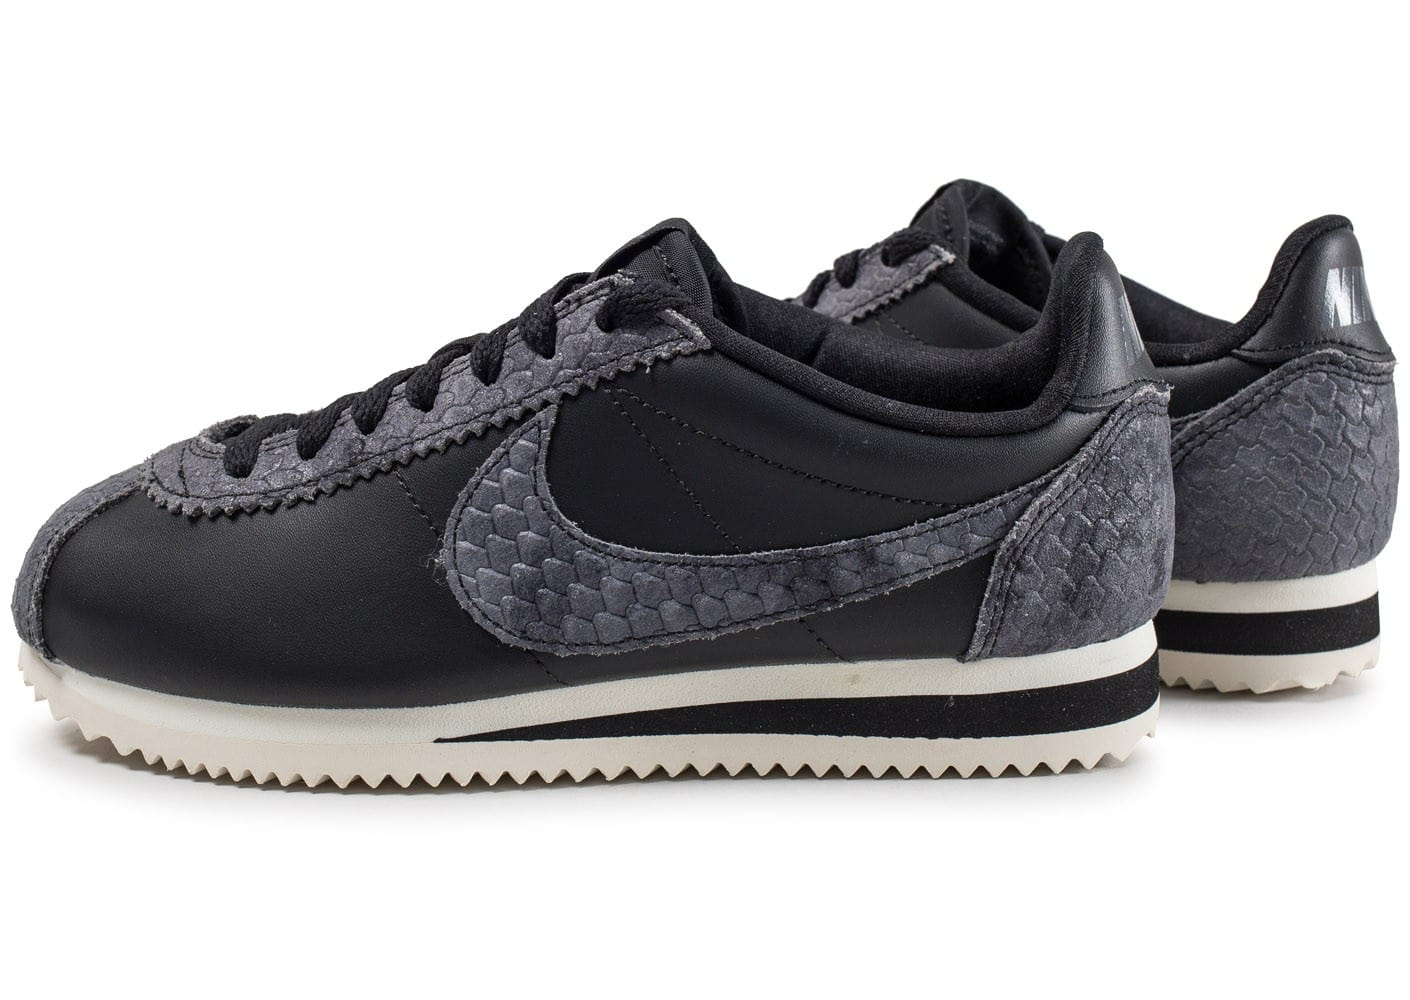 nike classic cortez prm noire et grise chaussures black friday chausport. Black Bedroom Furniture Sets. Home Design Ideas